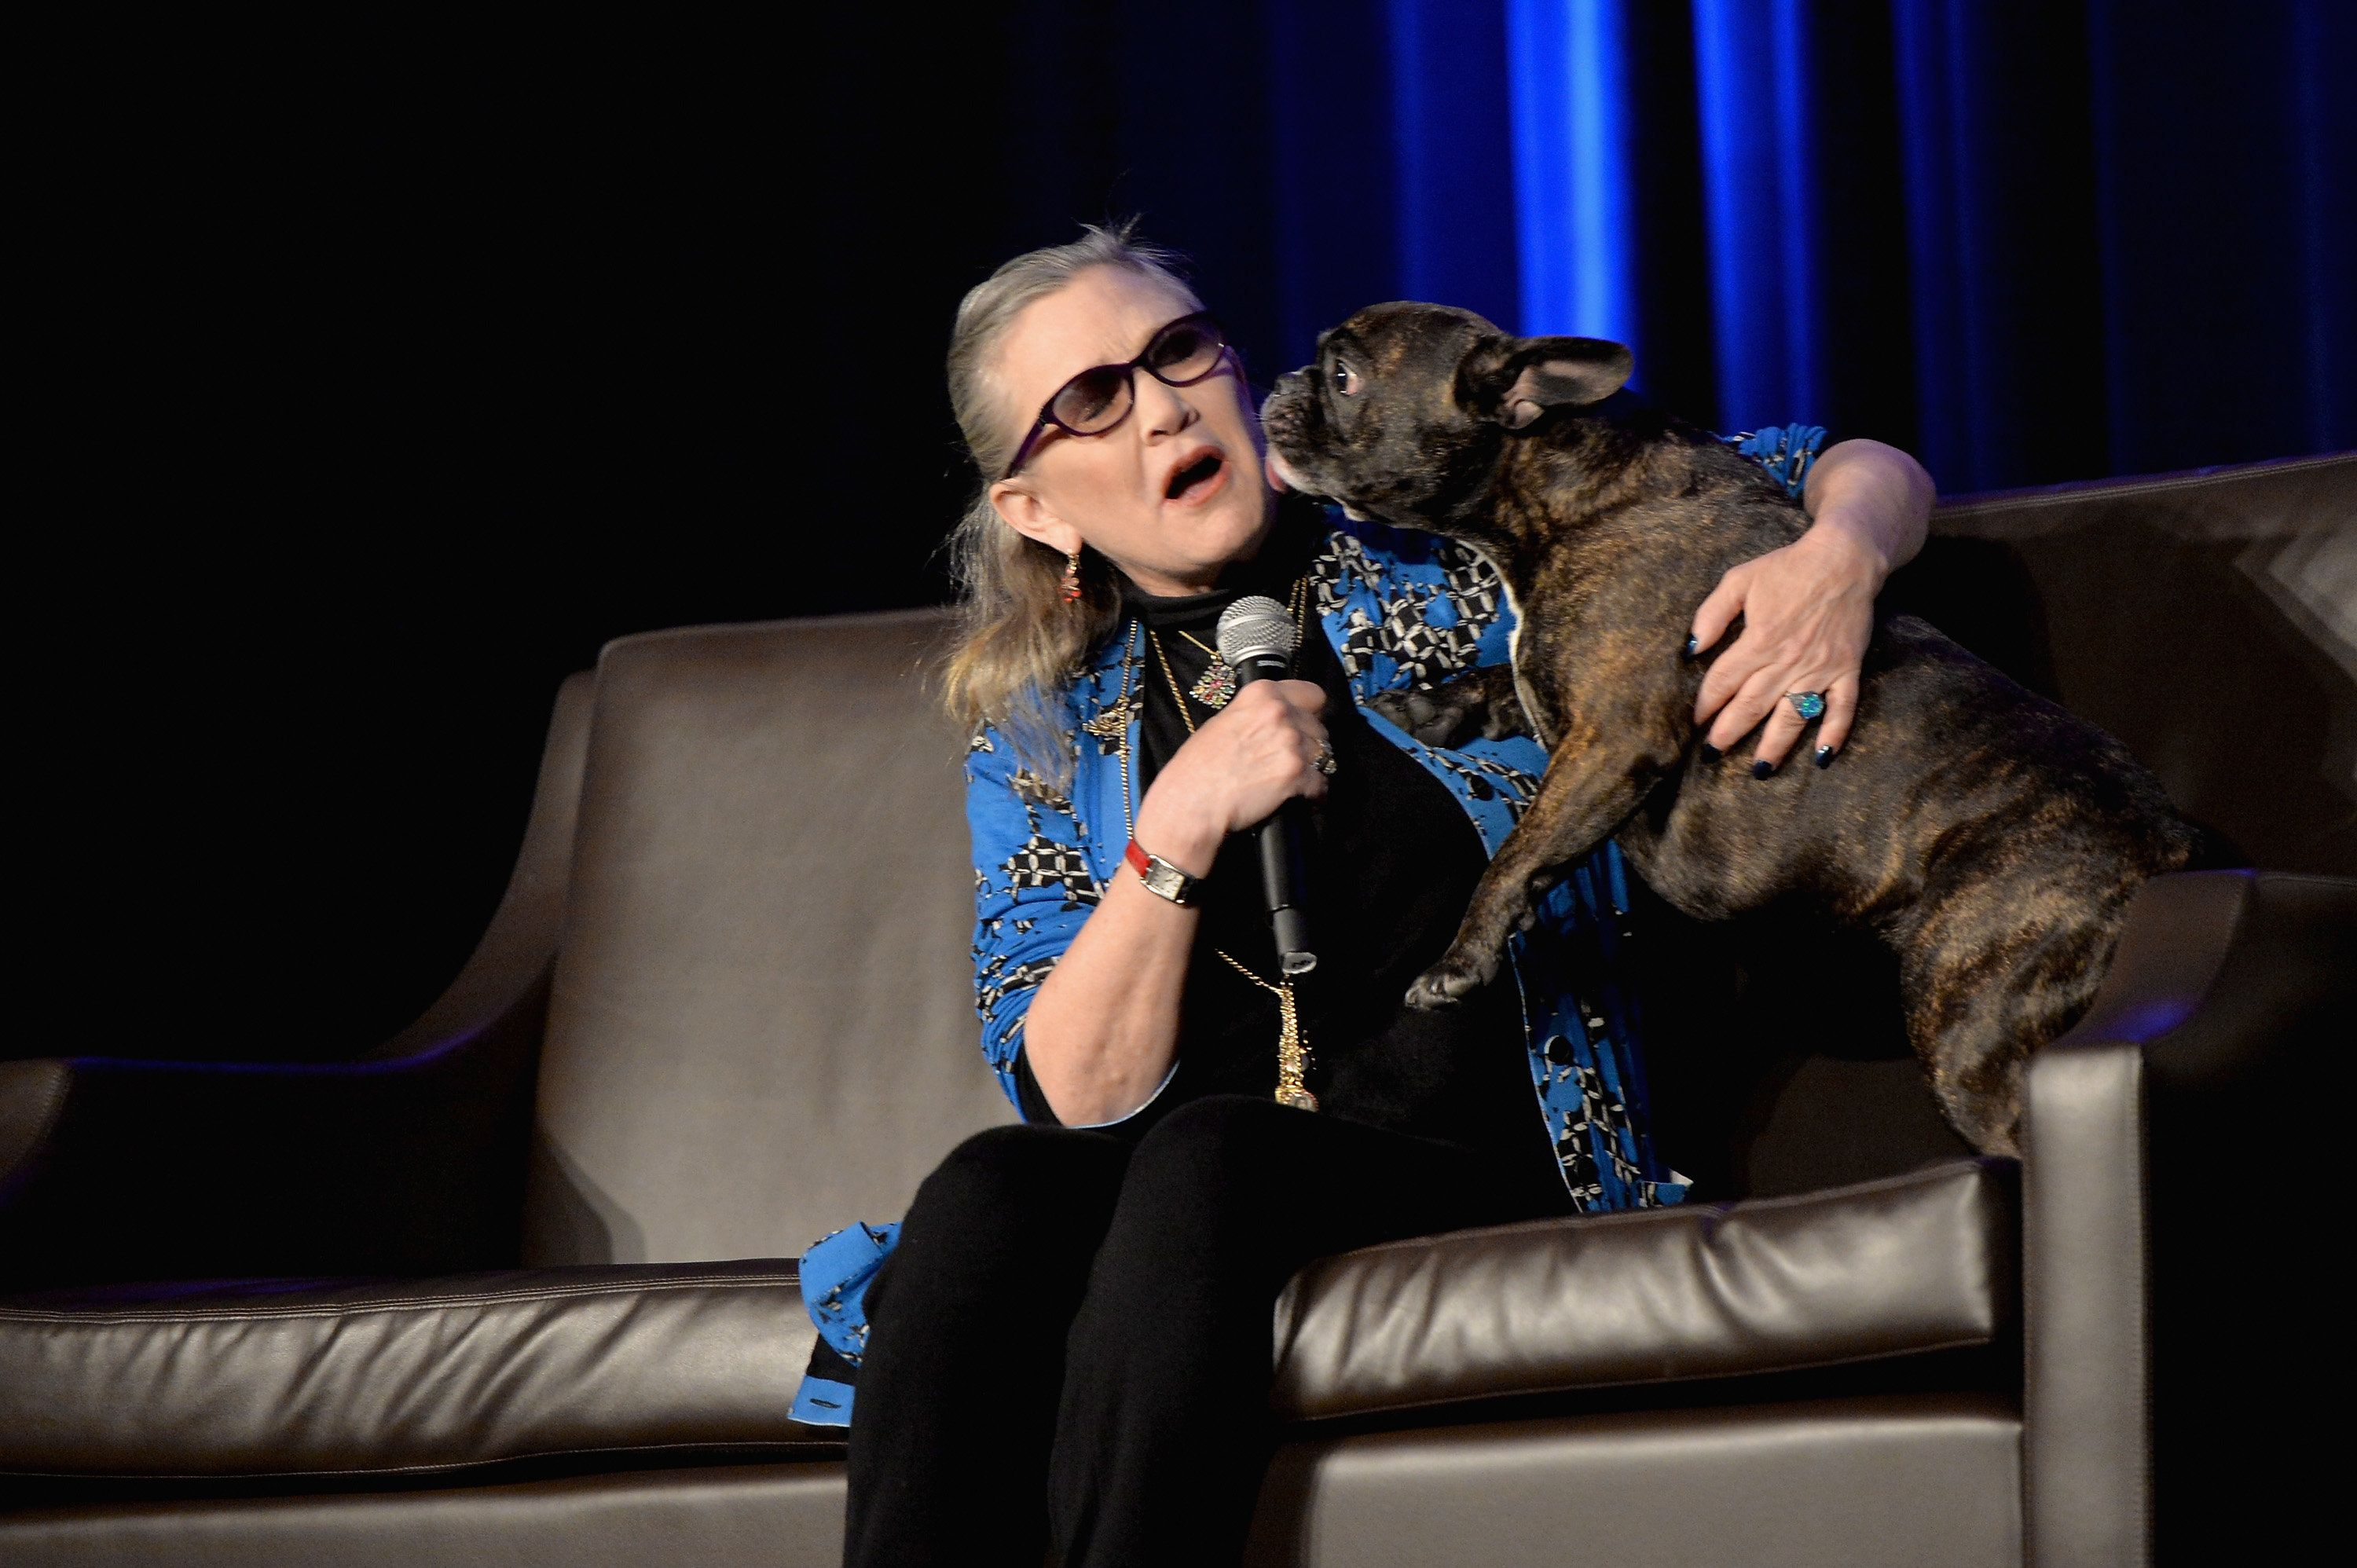 ROSEMONT, IL - AUGUST 21:  Actress Carrie Fisher speaks onstage during Wizard World Comic Con Chicago 2016 - Day 4 at Donald E. Stephens Convention Center on August 21, 2016 in Rosemont, Illinois.  (Photo by Daniel Boczarski/Getty Images for Wizard World)